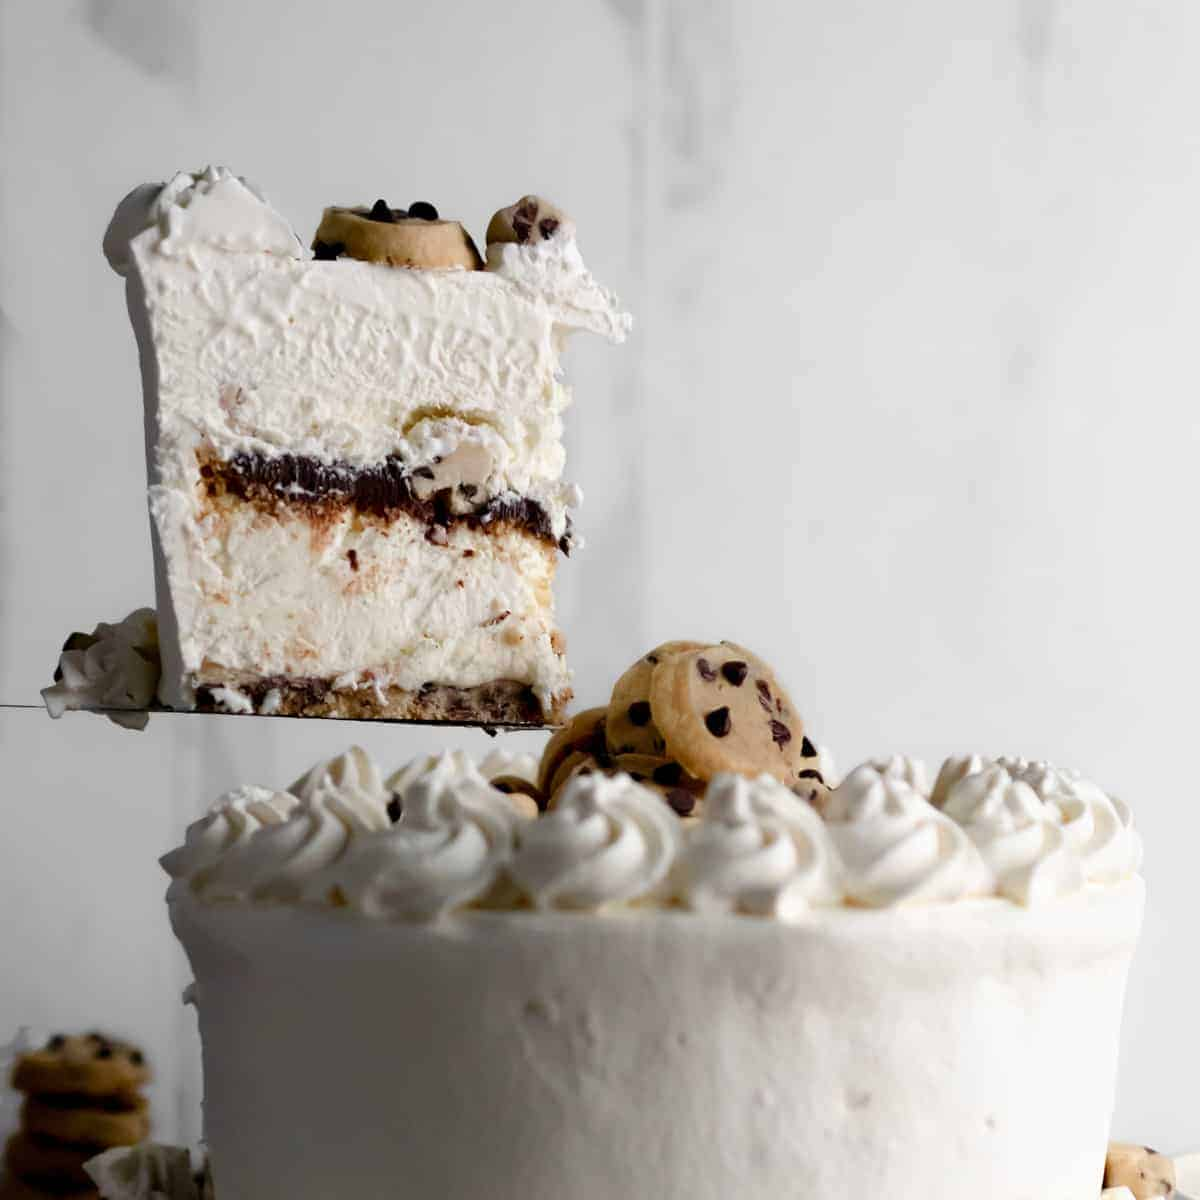 Lifting the first slice from the Cookie Dough Ice Cream Cake